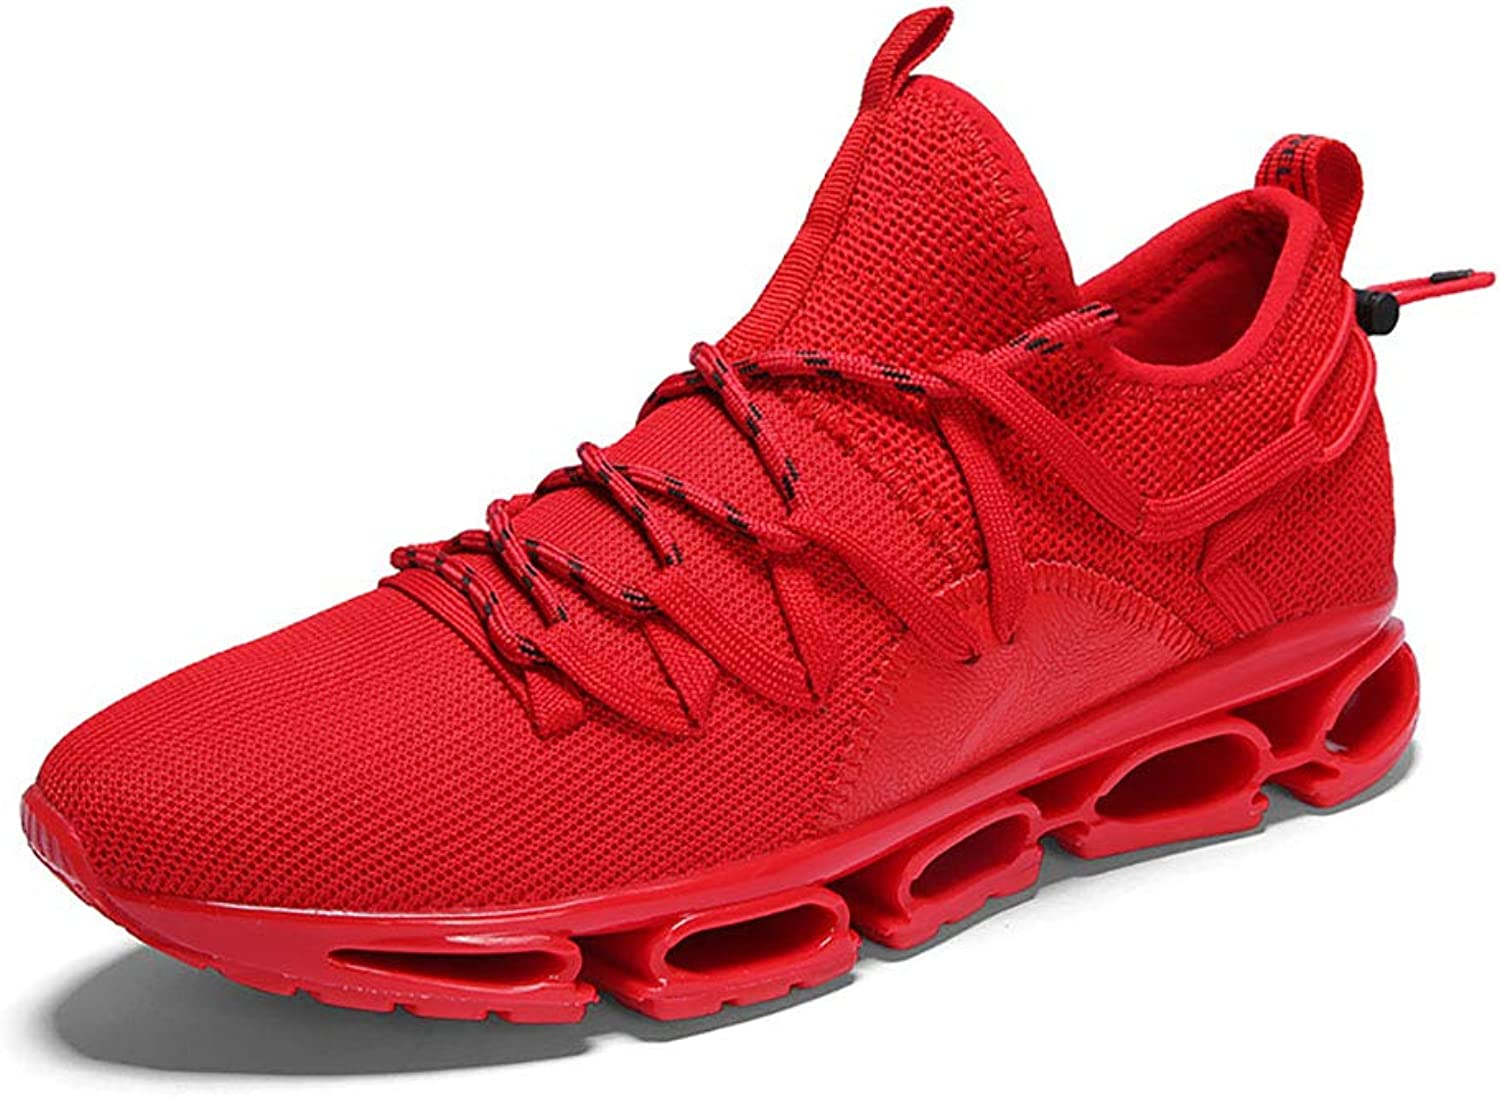 Sneakers Mens Casual Athletic shoes Lightweight Elastic Breathable Mesh Running Hiking Walking Jogging shoes,Red,40